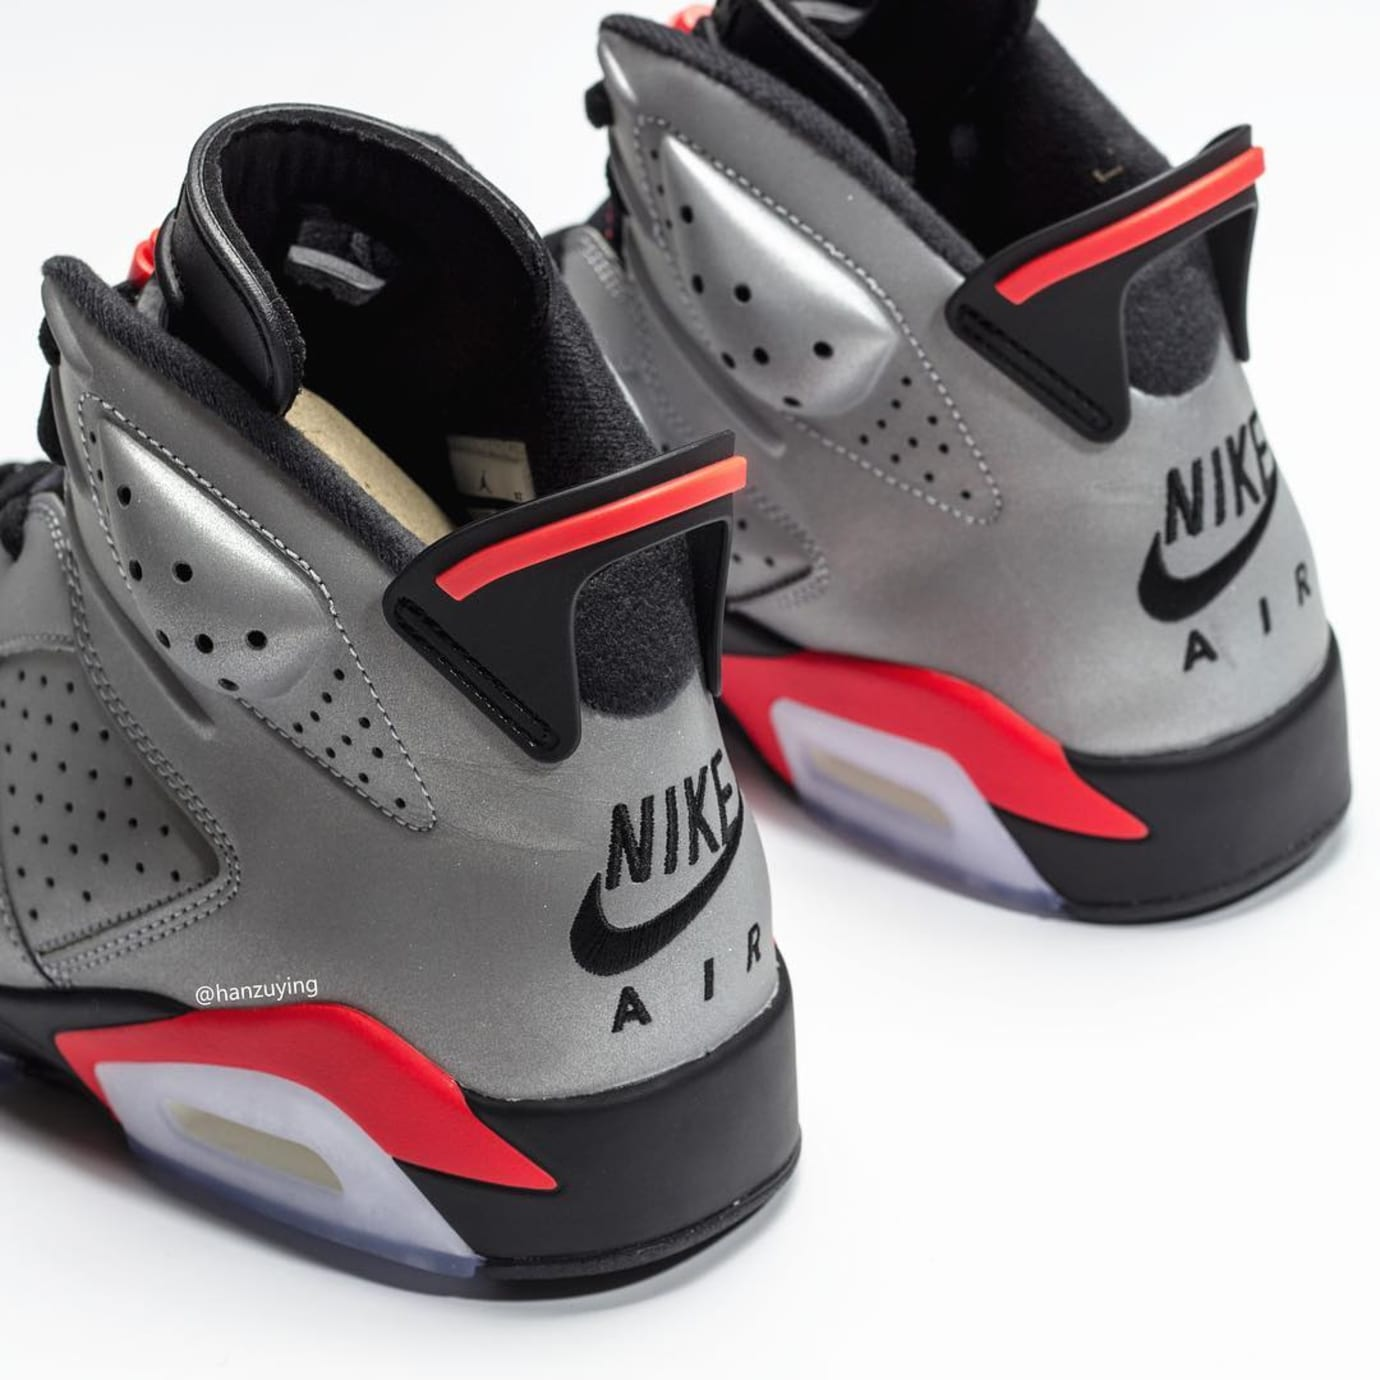 Air Jordan 6 Retro 'Reflective Infrared' CI4072-001 Heel